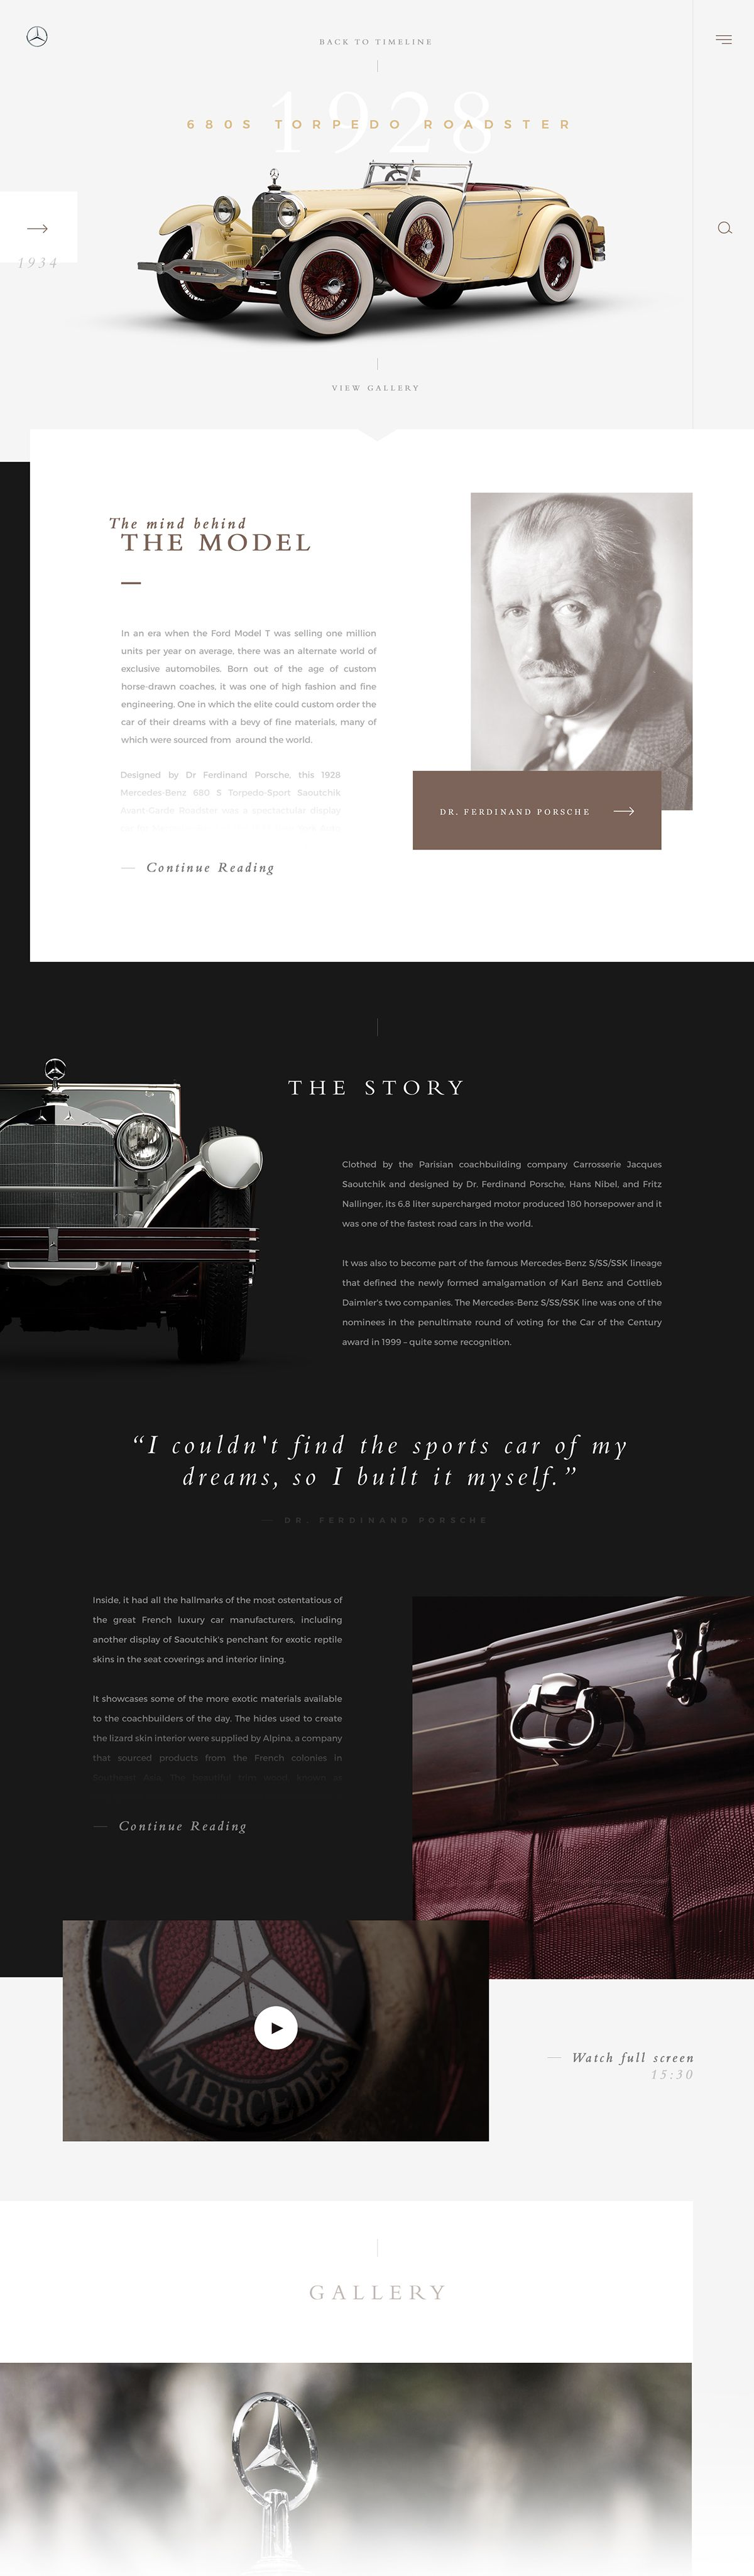 gorgeous website for this vintage car | Webdesign and layout ...